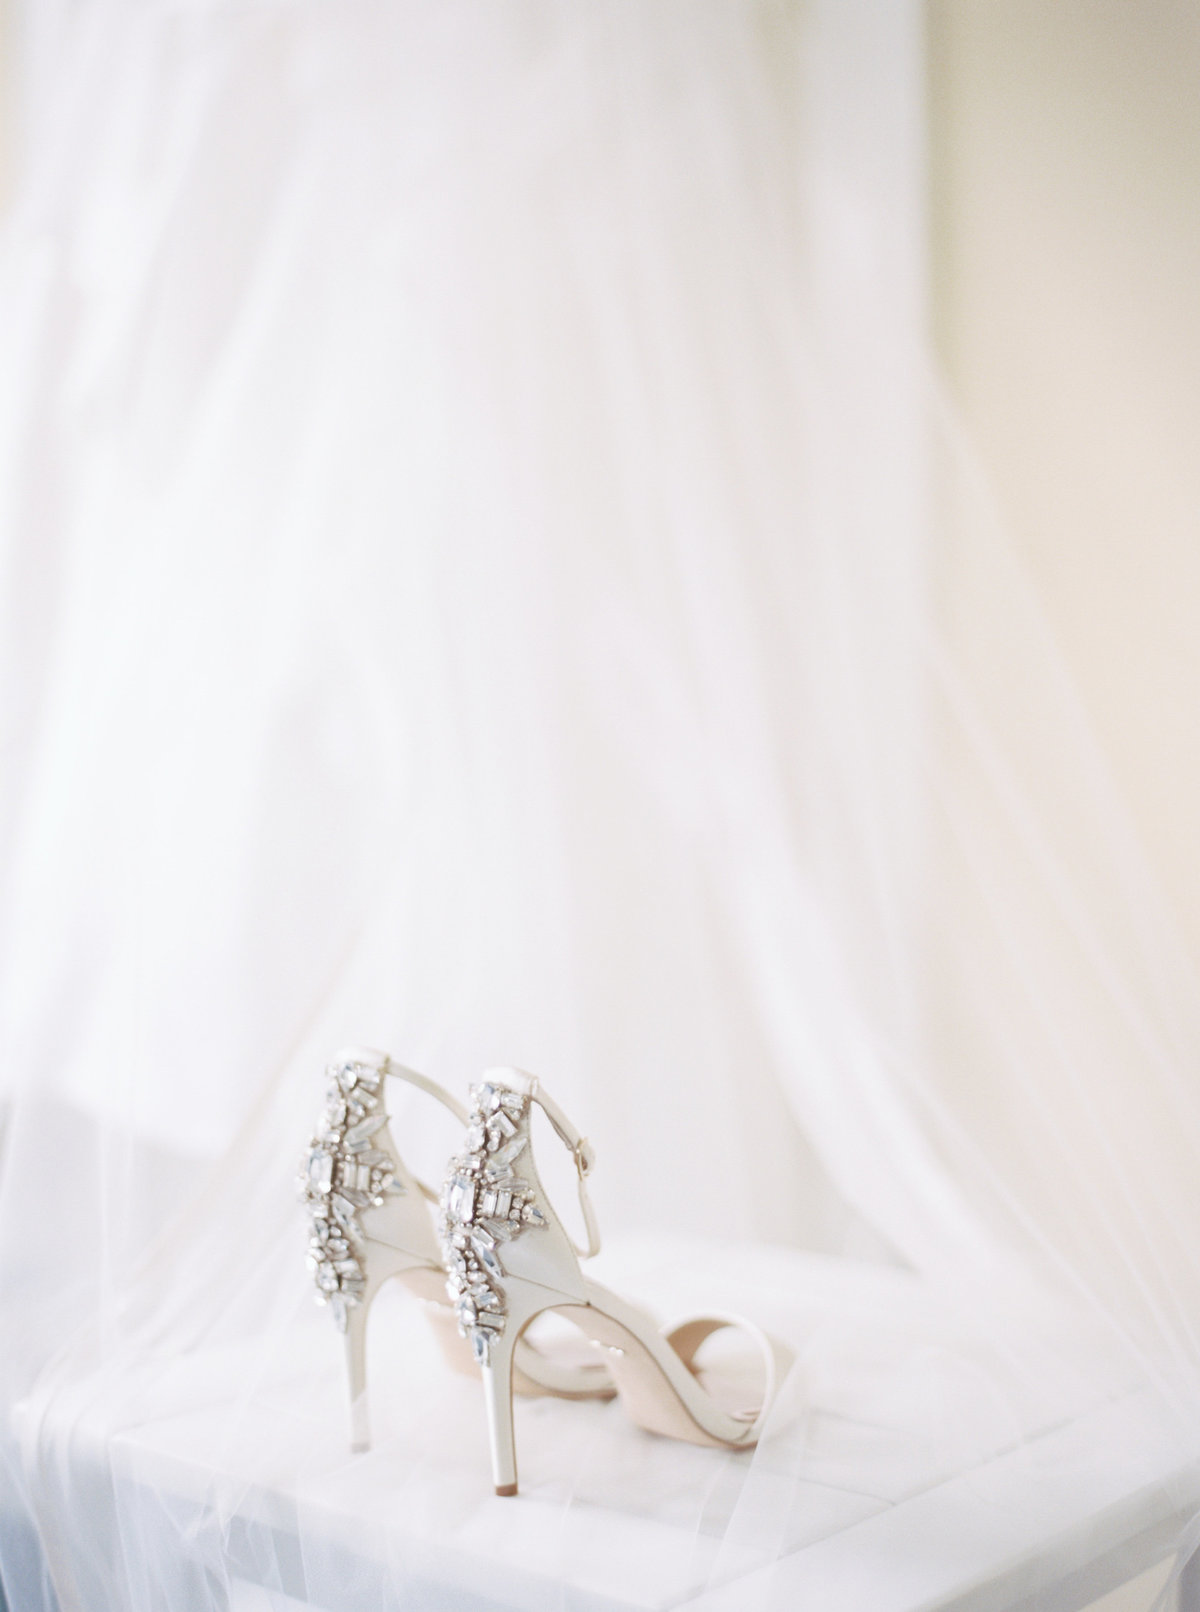 Bridal shoes for Chatham, MA wedding